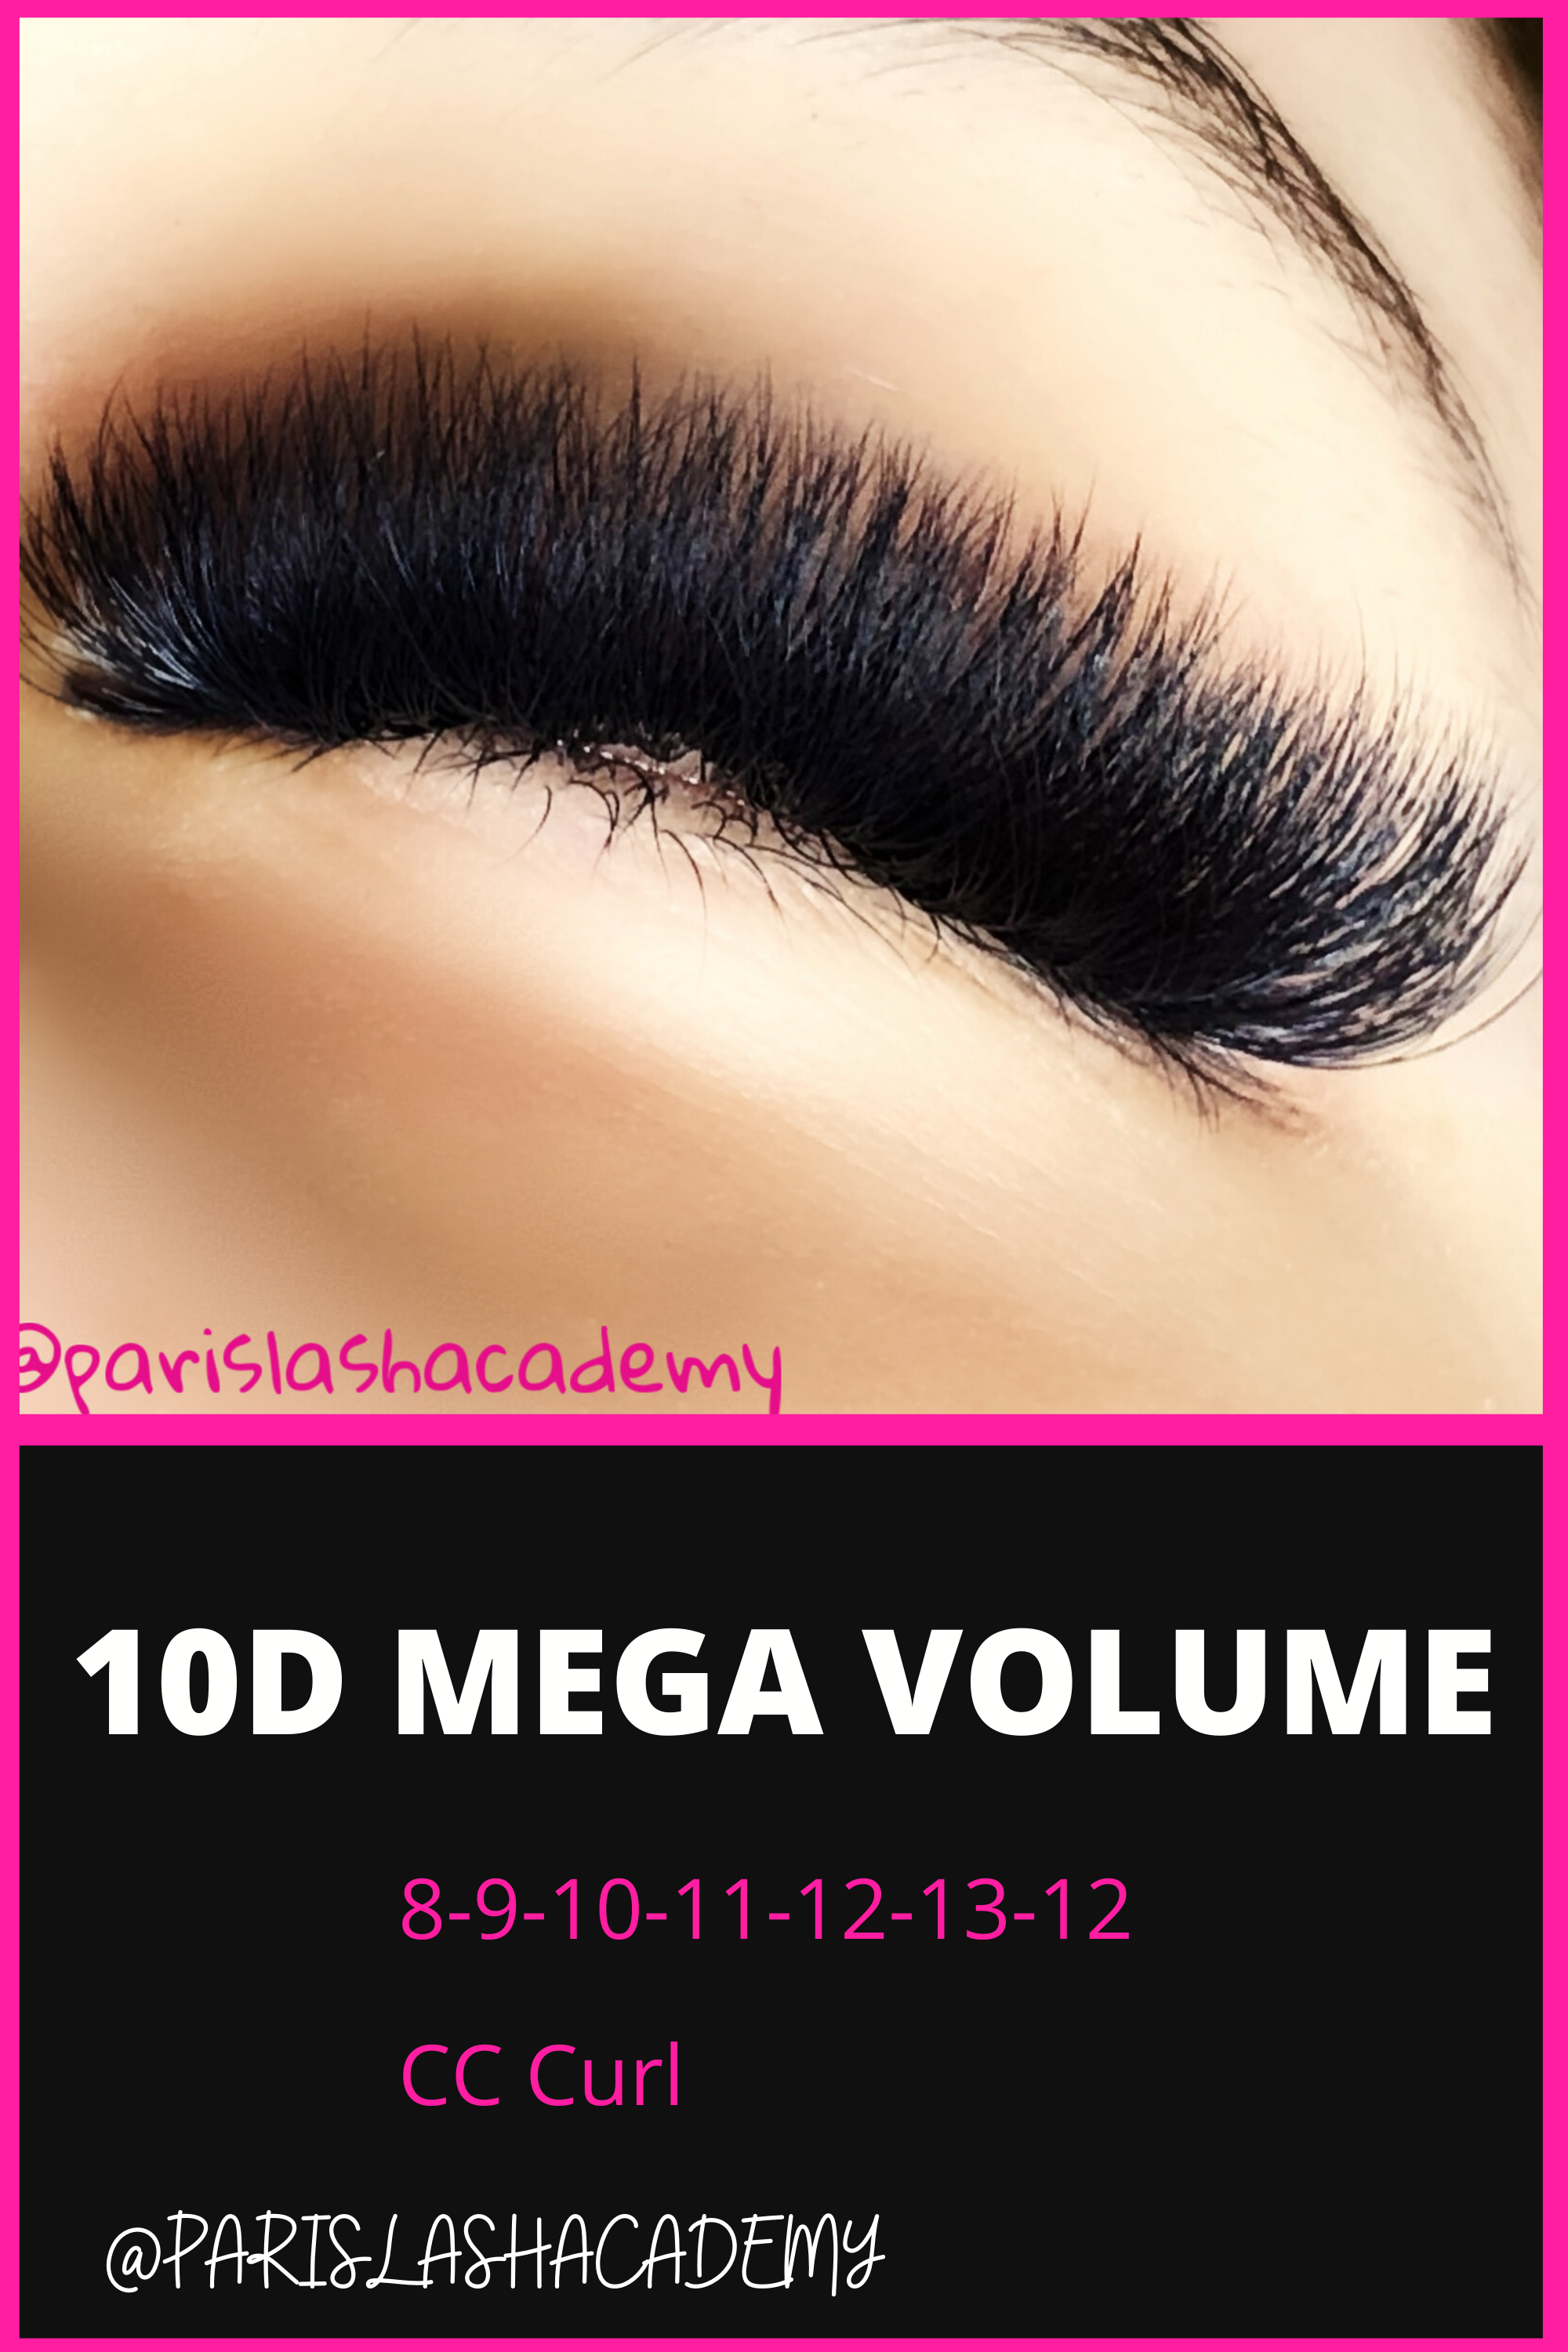 10D Mega Volume Eyelash Extensions Map using Paris Lash Academy Lashes #Lashextensionsstyling #lashextensionsmapping #falselashes #lashquotes #healthylashes #eyelinereffect #lashideas #lashgoals #eyelashextensions #volumelashes #lashgrowth #classiclashes #megavolume #naturallashes #glamlashes #minklashes #lashmap #wispylashmap